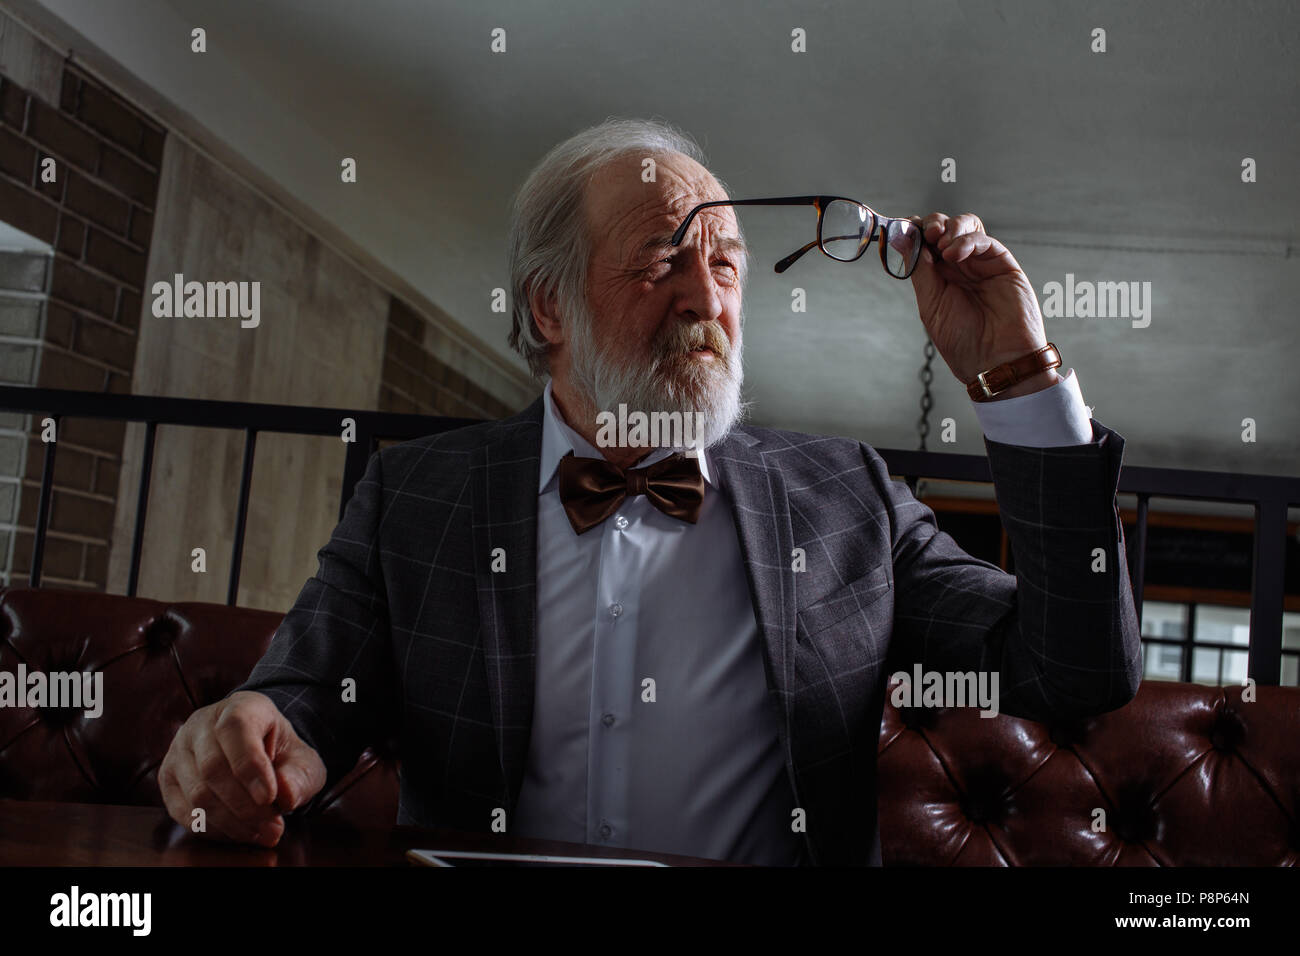 old male trying to look trough the durty glasses. pensioner is drying up glasses. old elegant man with weak sight Stock Photo